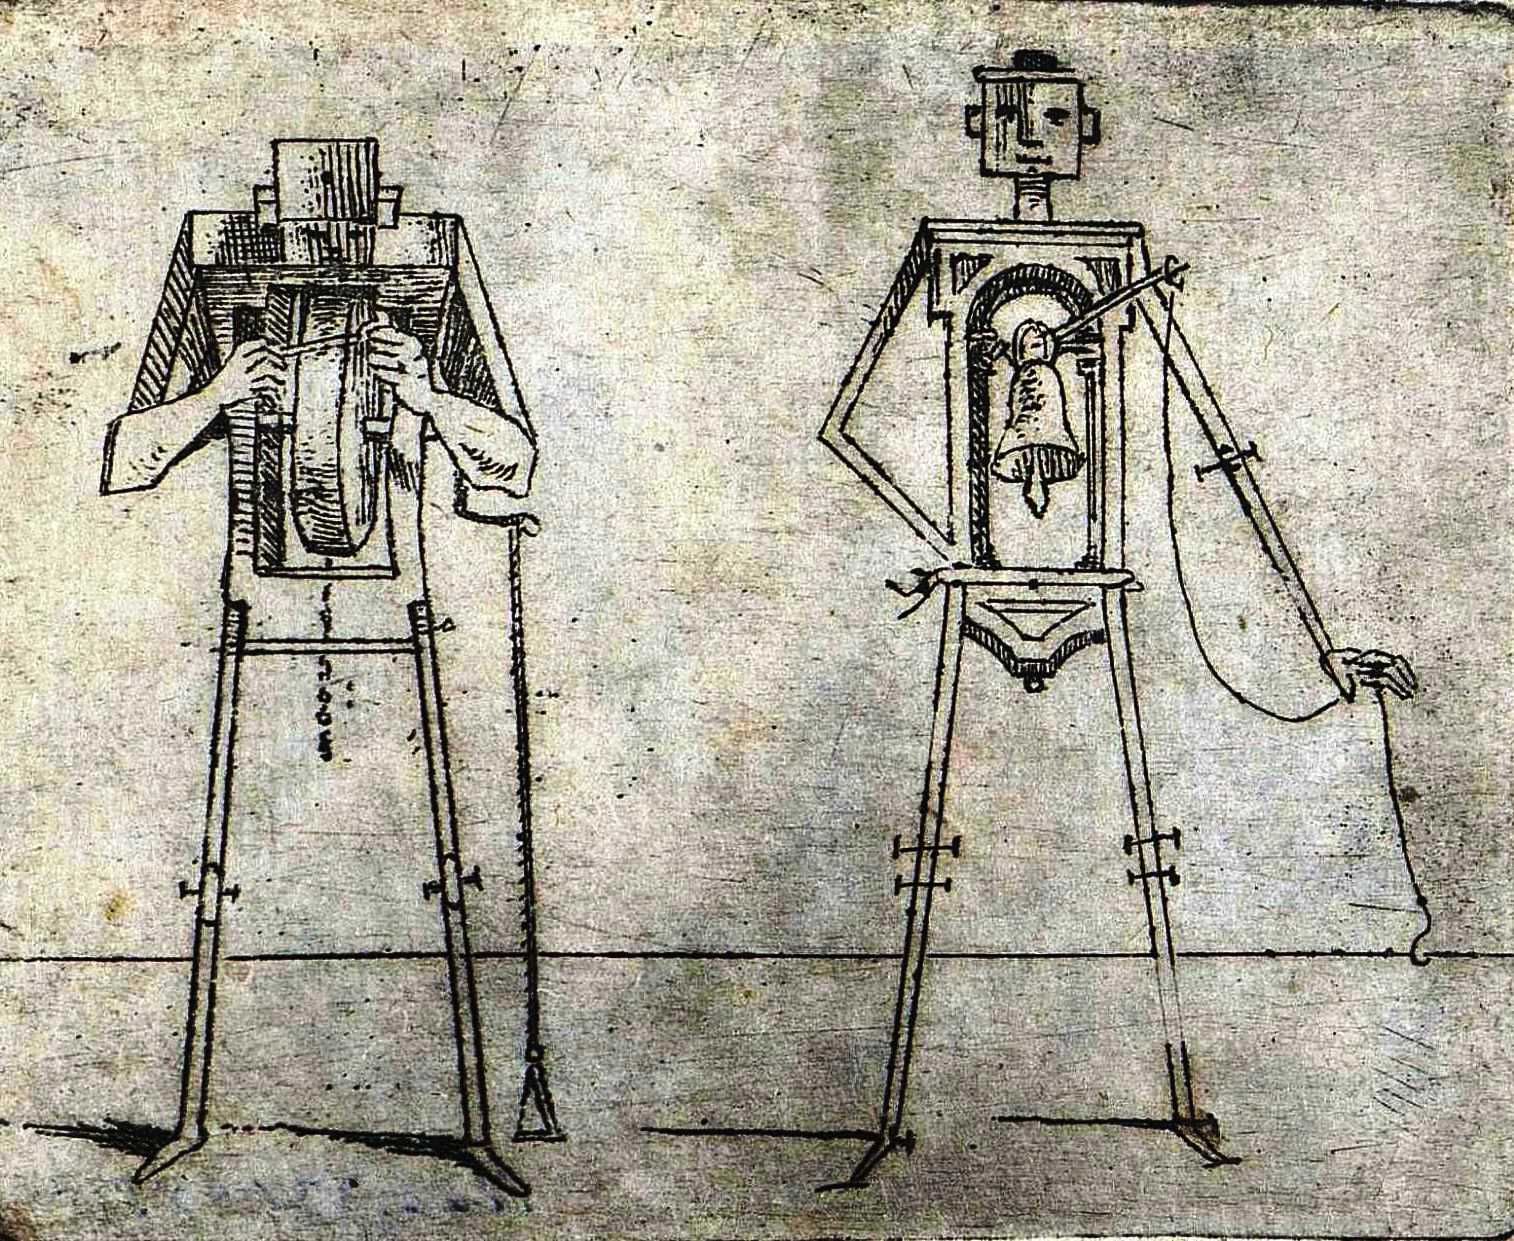 Джованни Баттиста Брачелли «Bizzarie di varie figure», 1624, лист 27.